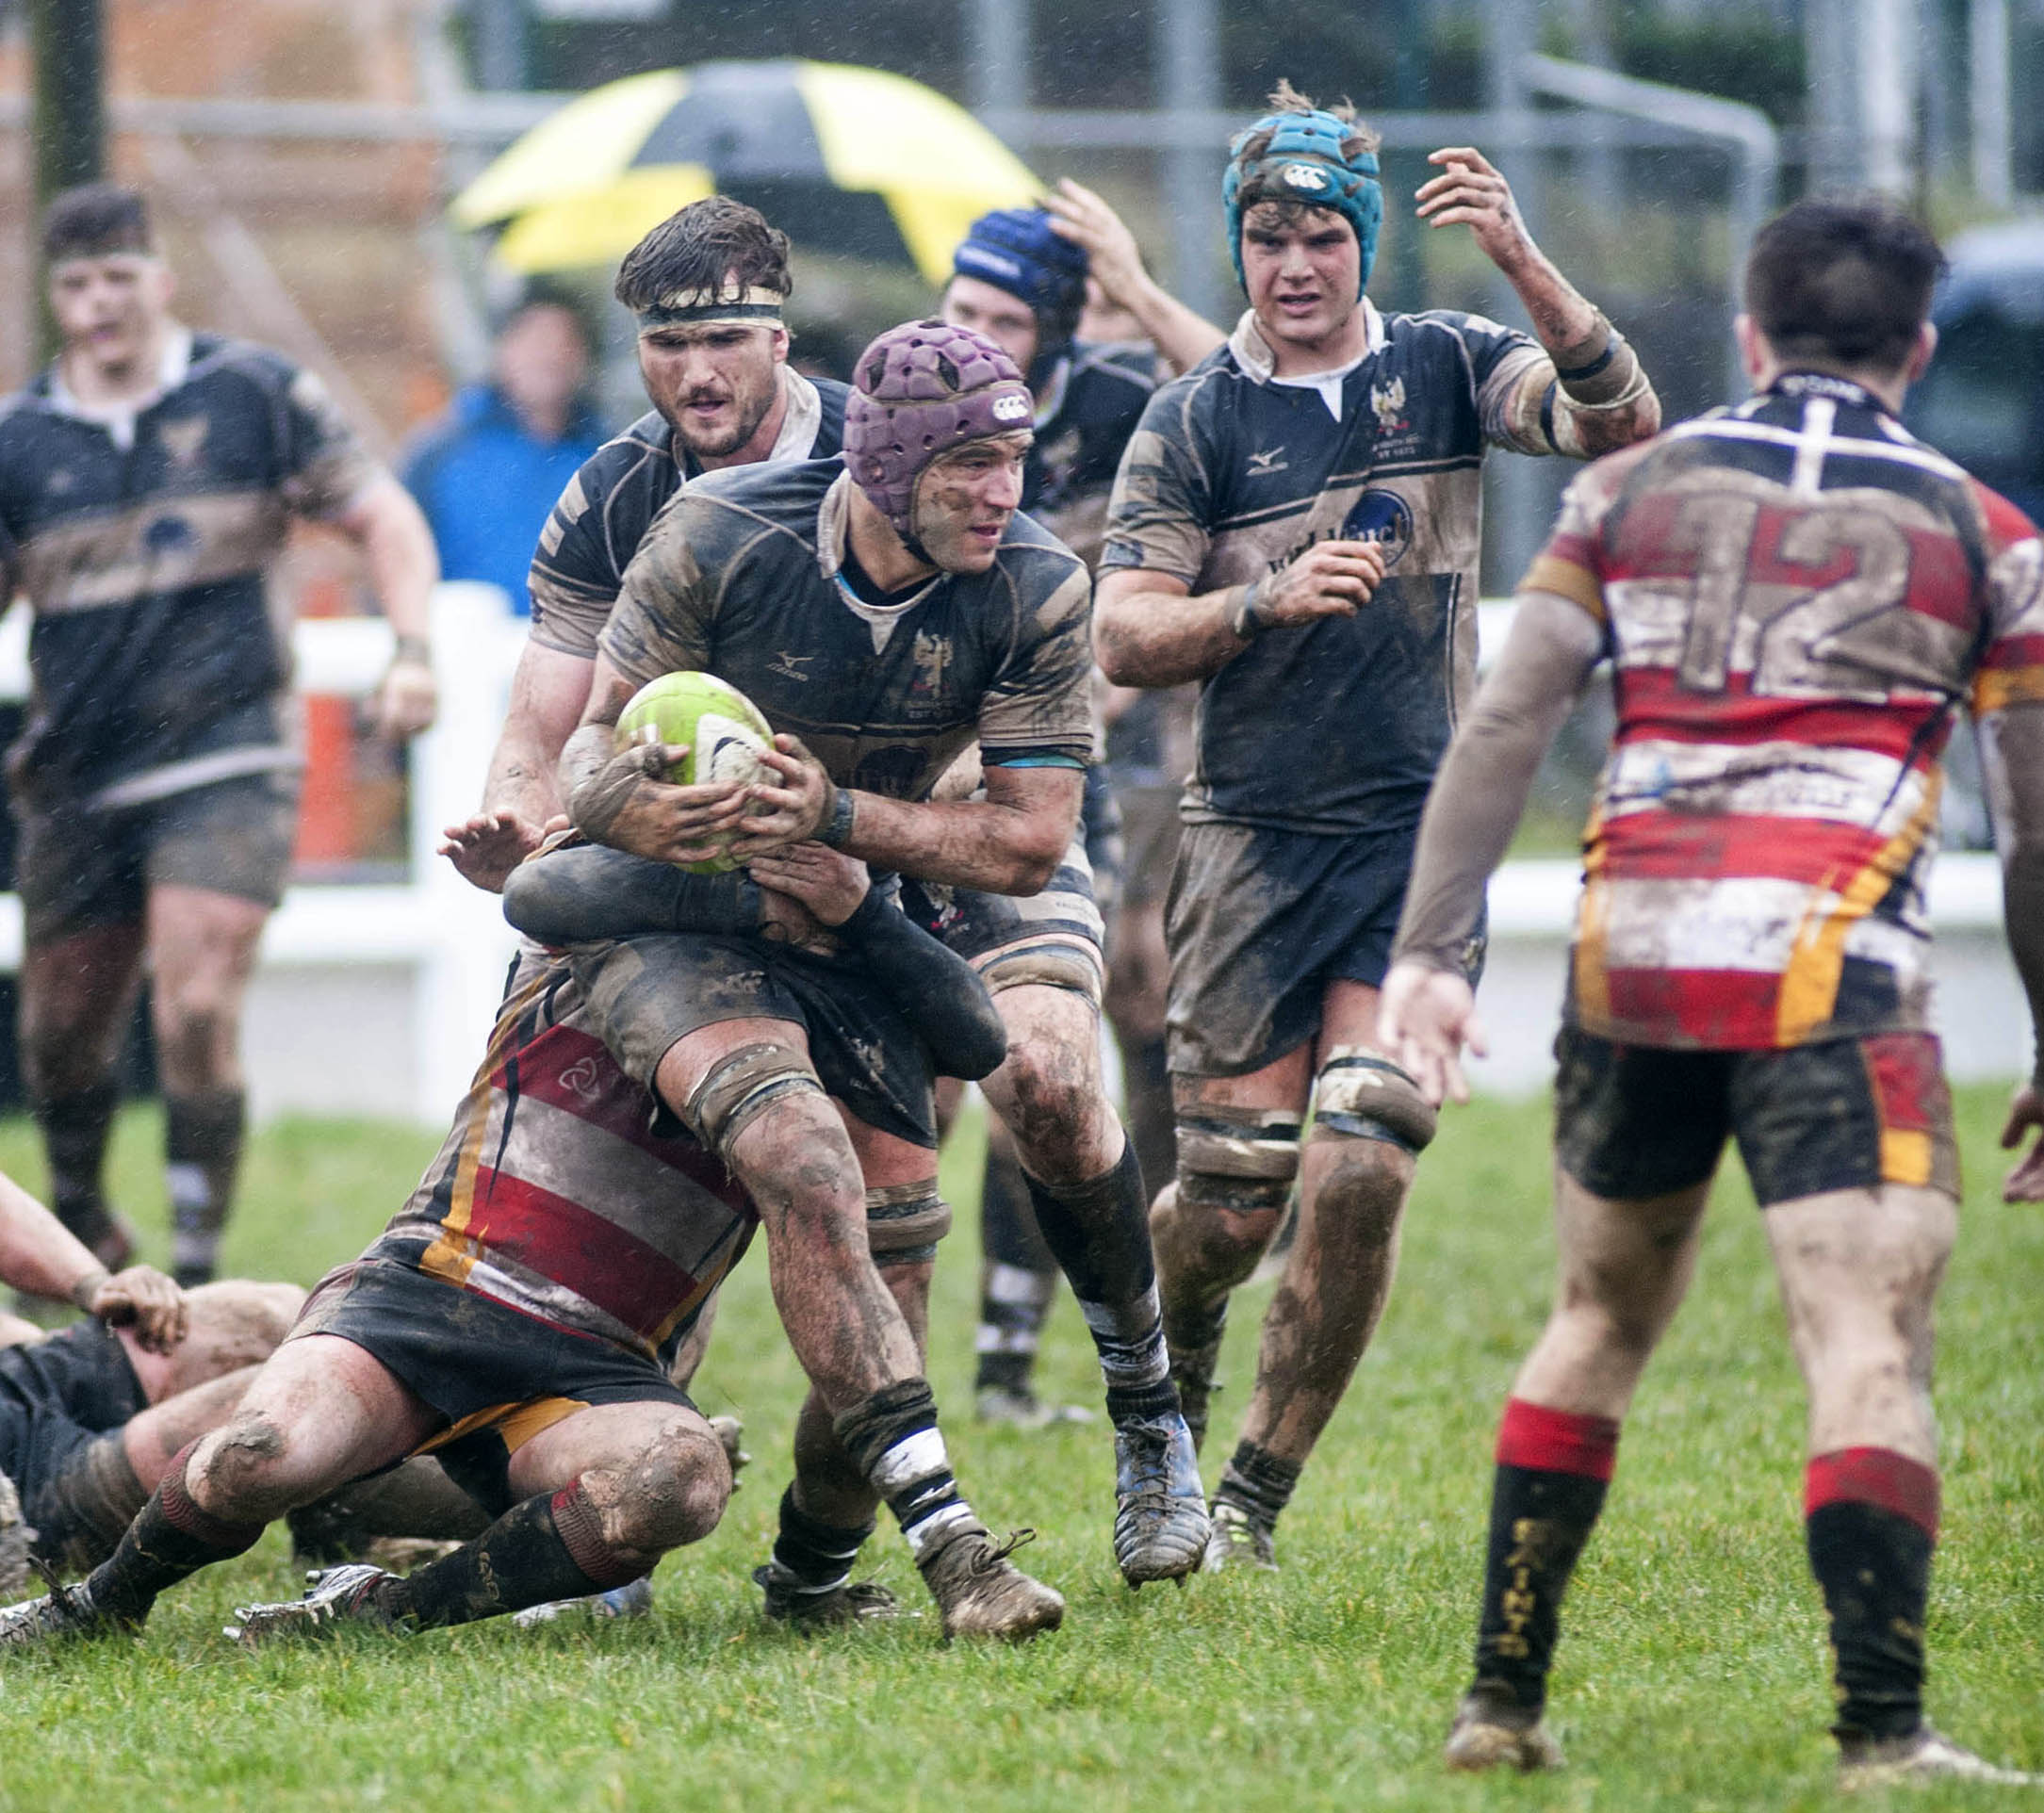 Falmouth lost 43-29 to St Ives but stay up thanks to results elsewhere